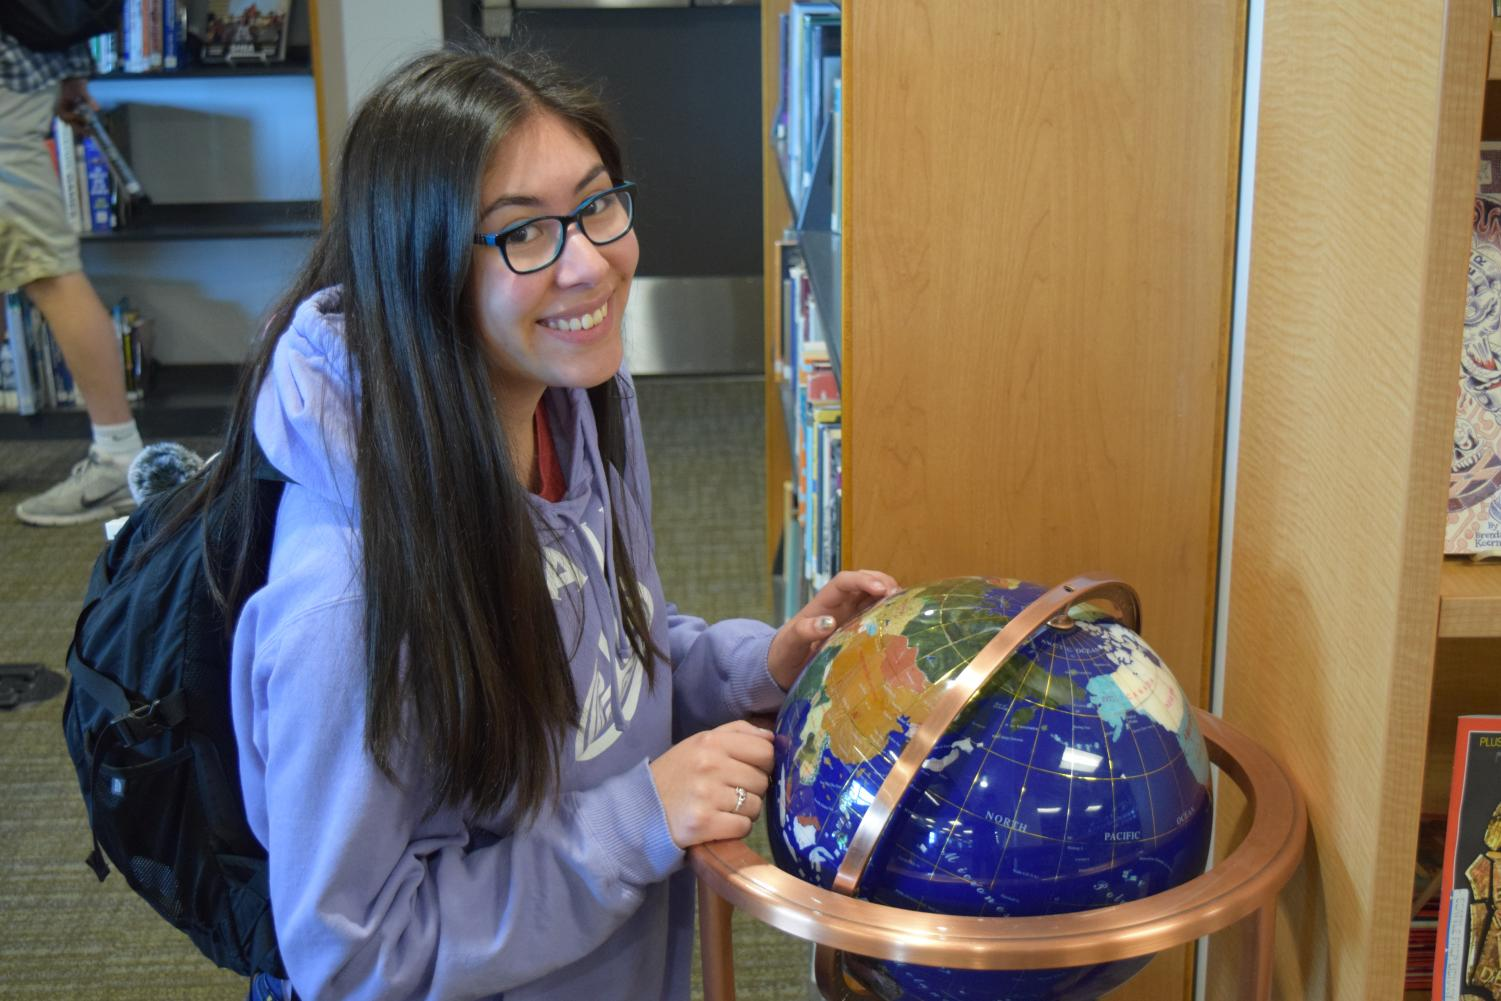 Ganz poses with a globe as she sets sights for her future voyages during her gap year.